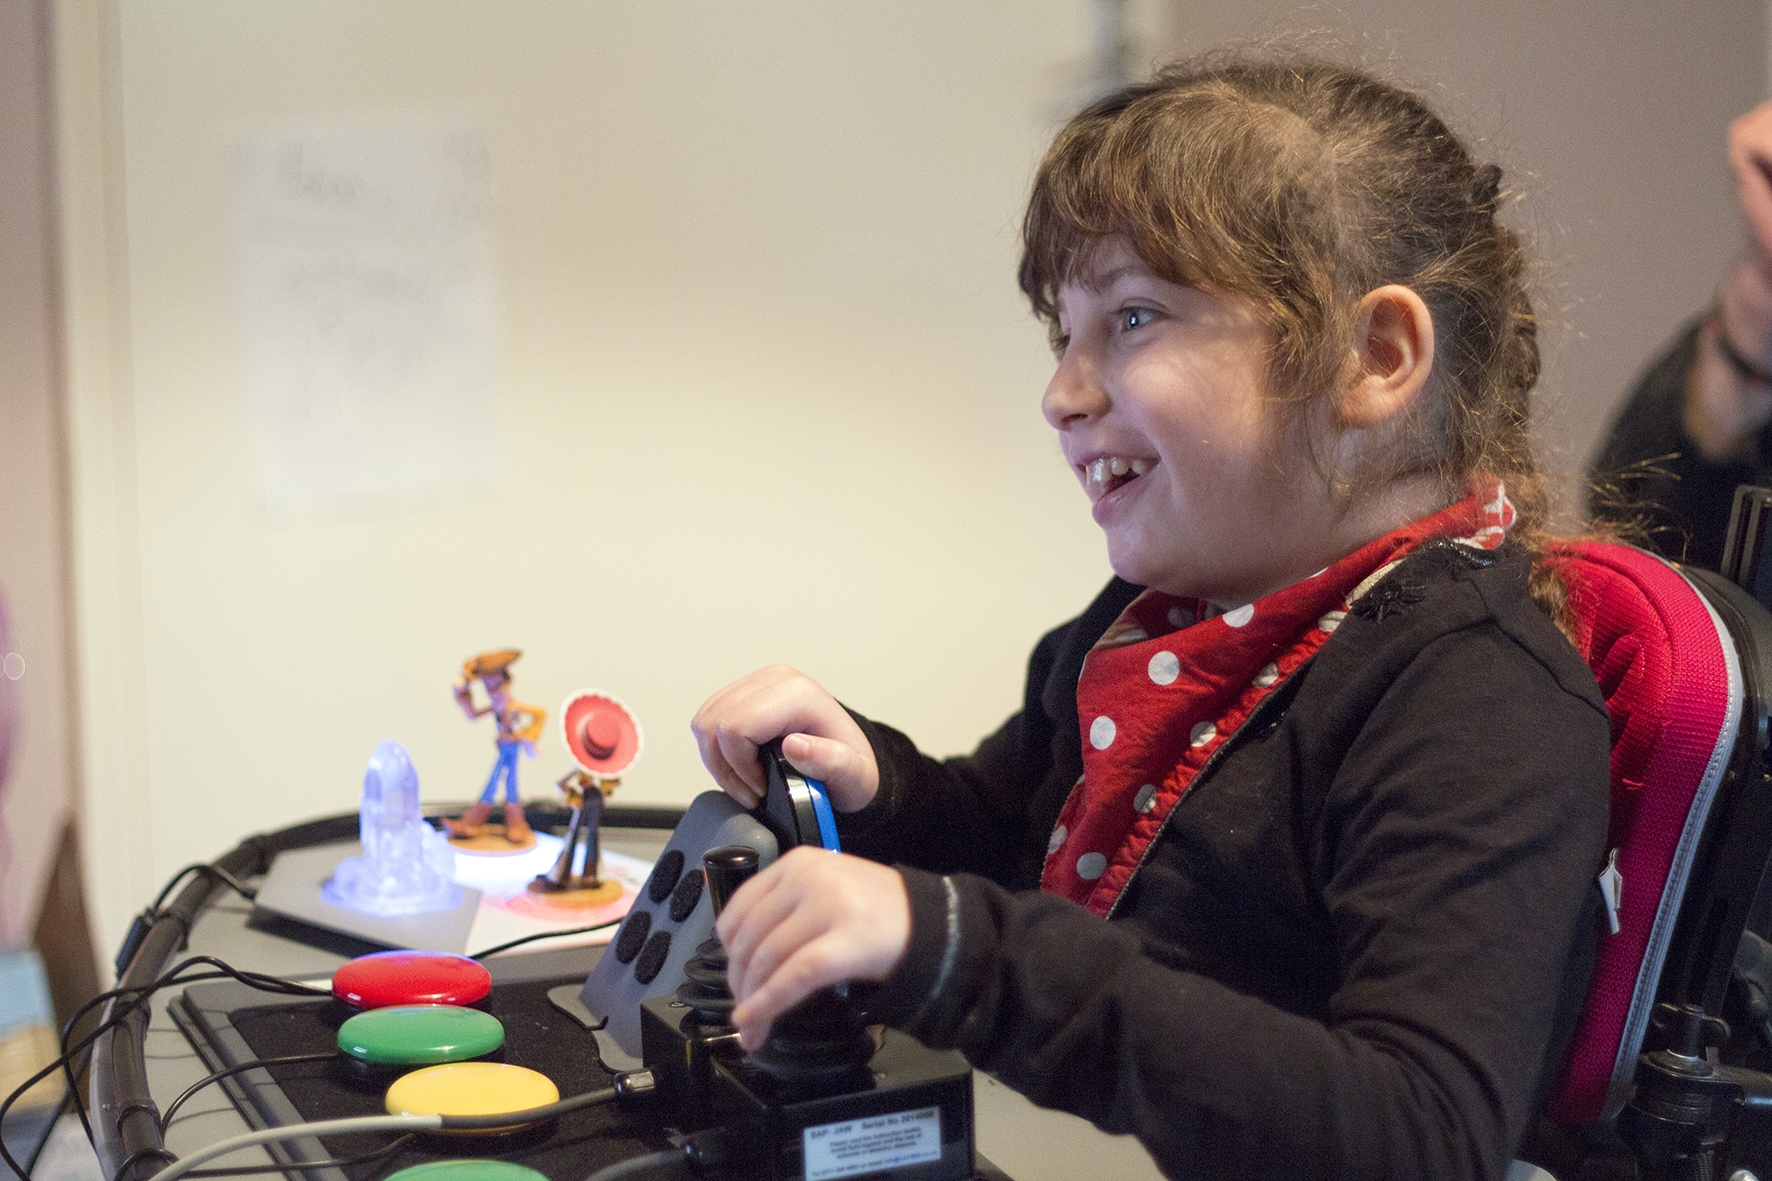 Guest post - Personalised accessible gaming: Making play possible